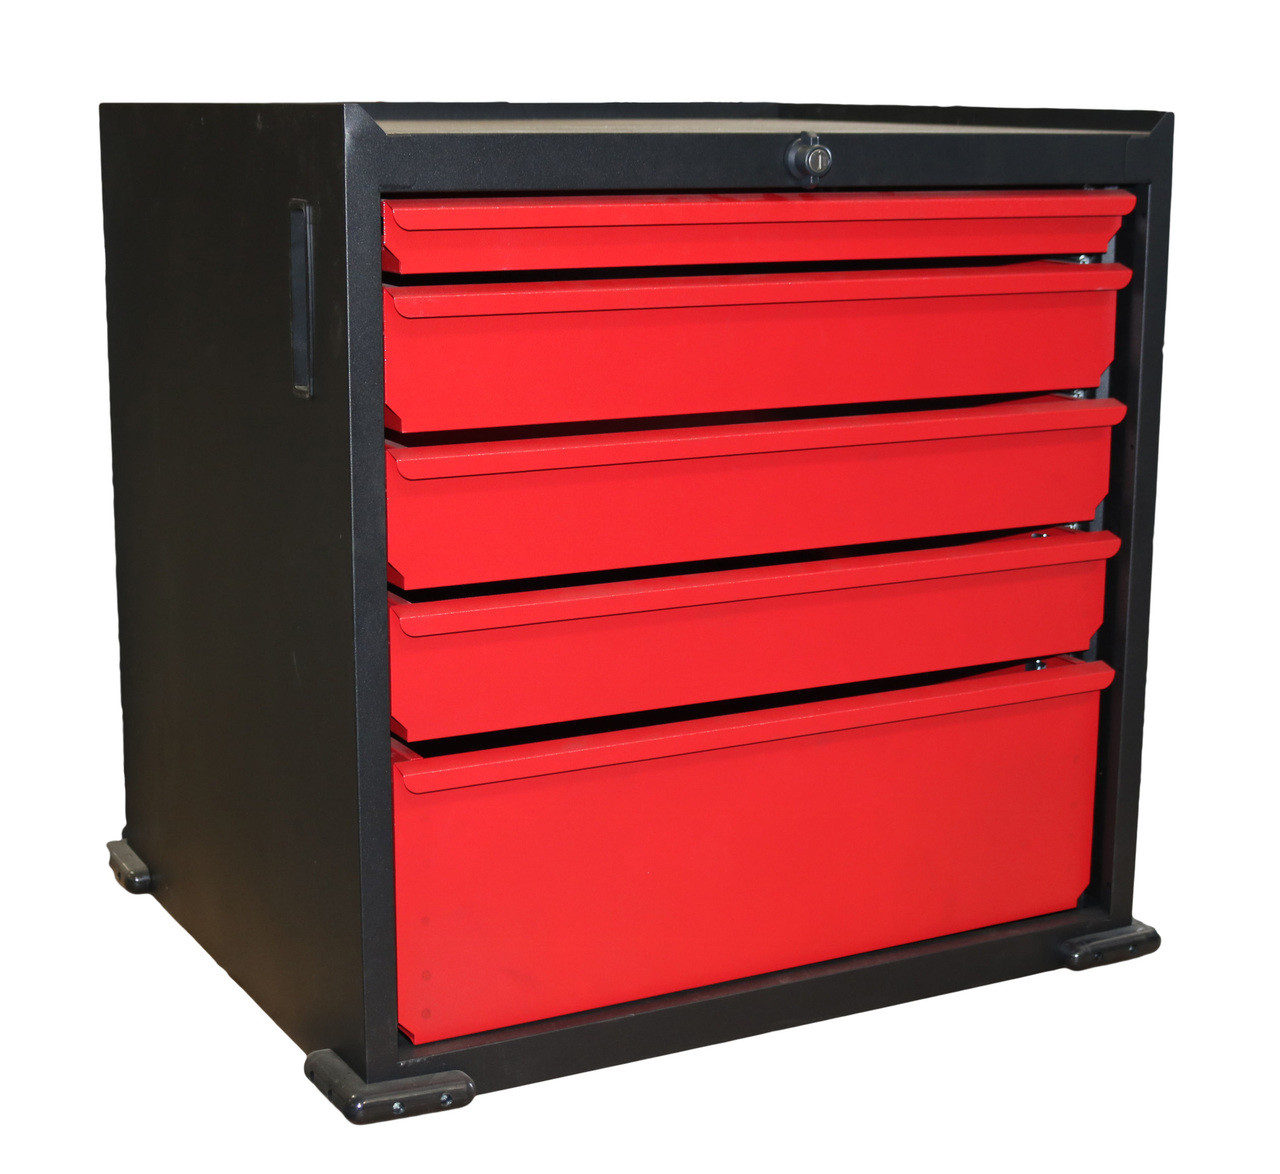 Five Drawer Modular Base Cabinet, Red  with lock, without wheels